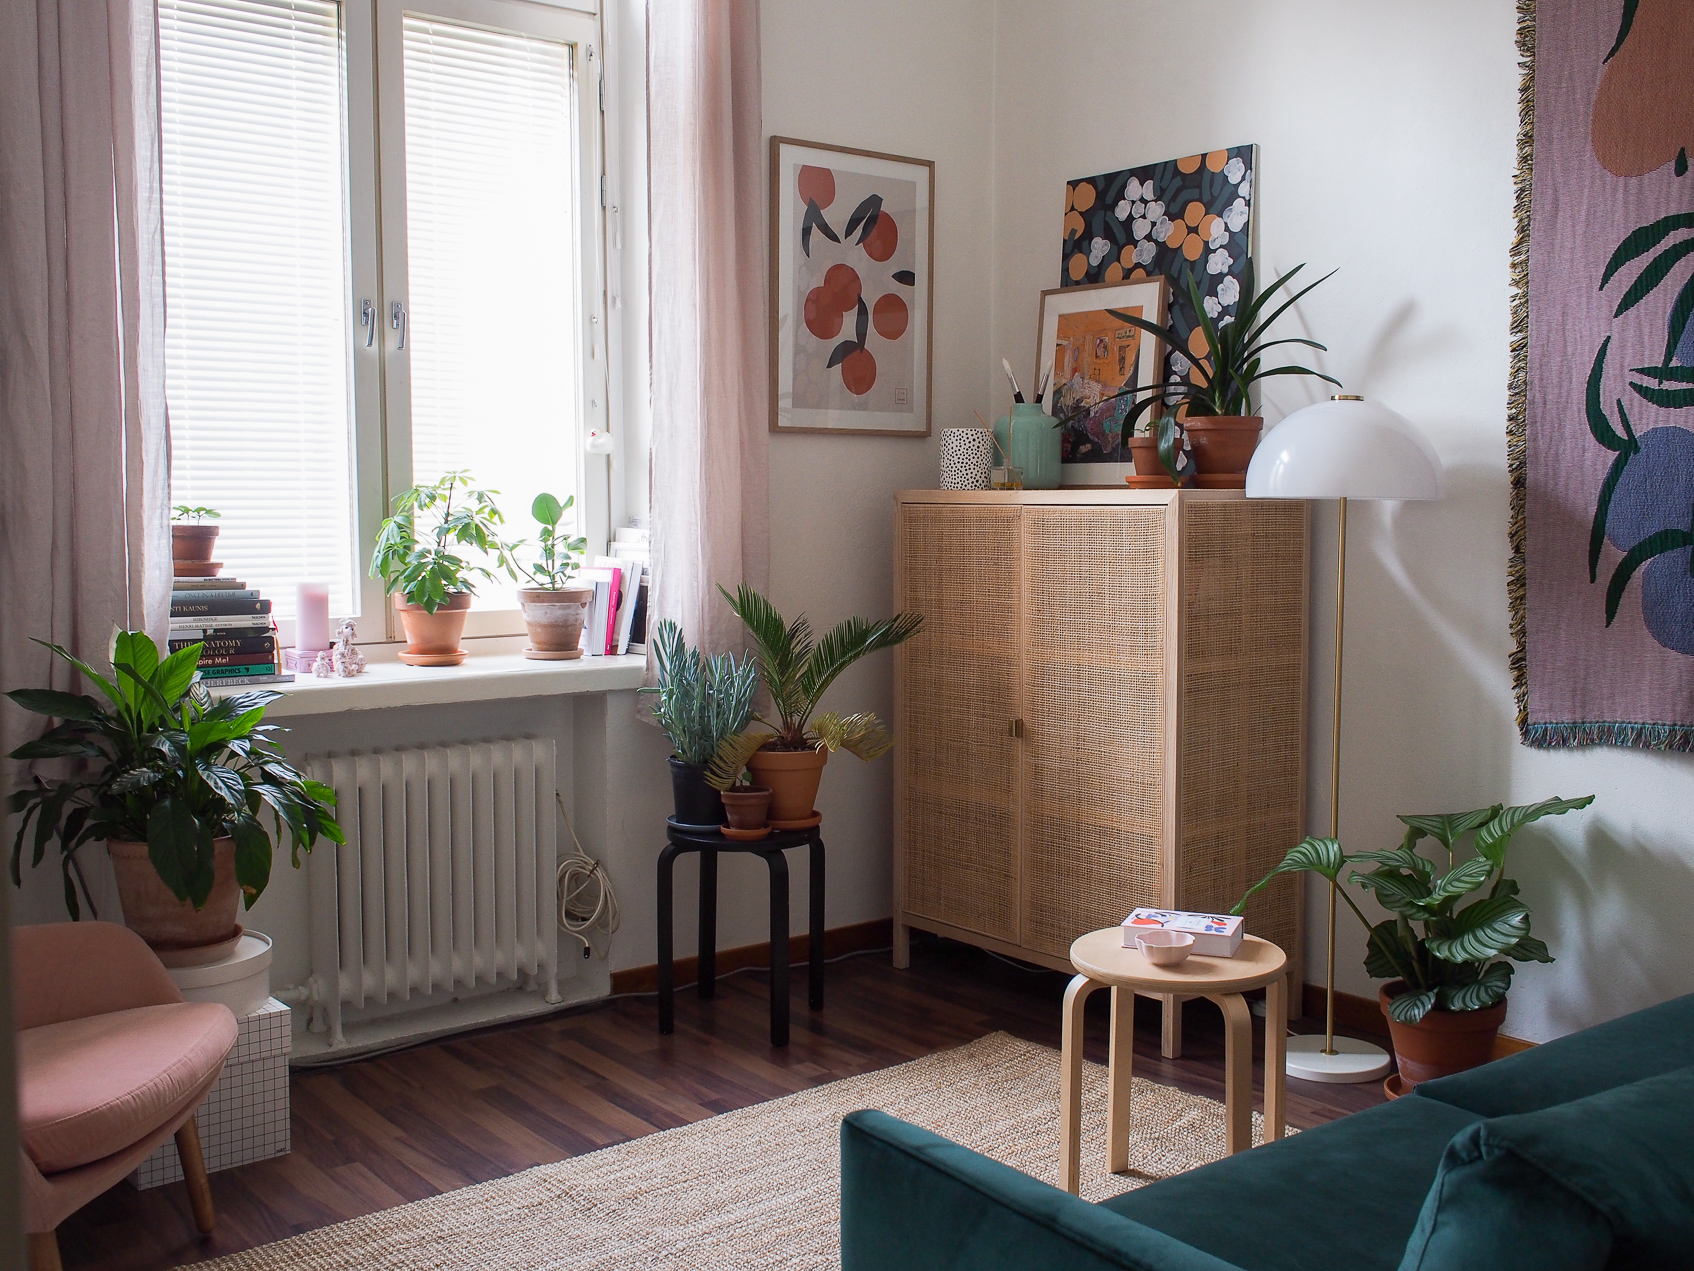 A Finnish Illustrator's 280-Square-Foot Apartment Comes into Bloom | Design*Sponge